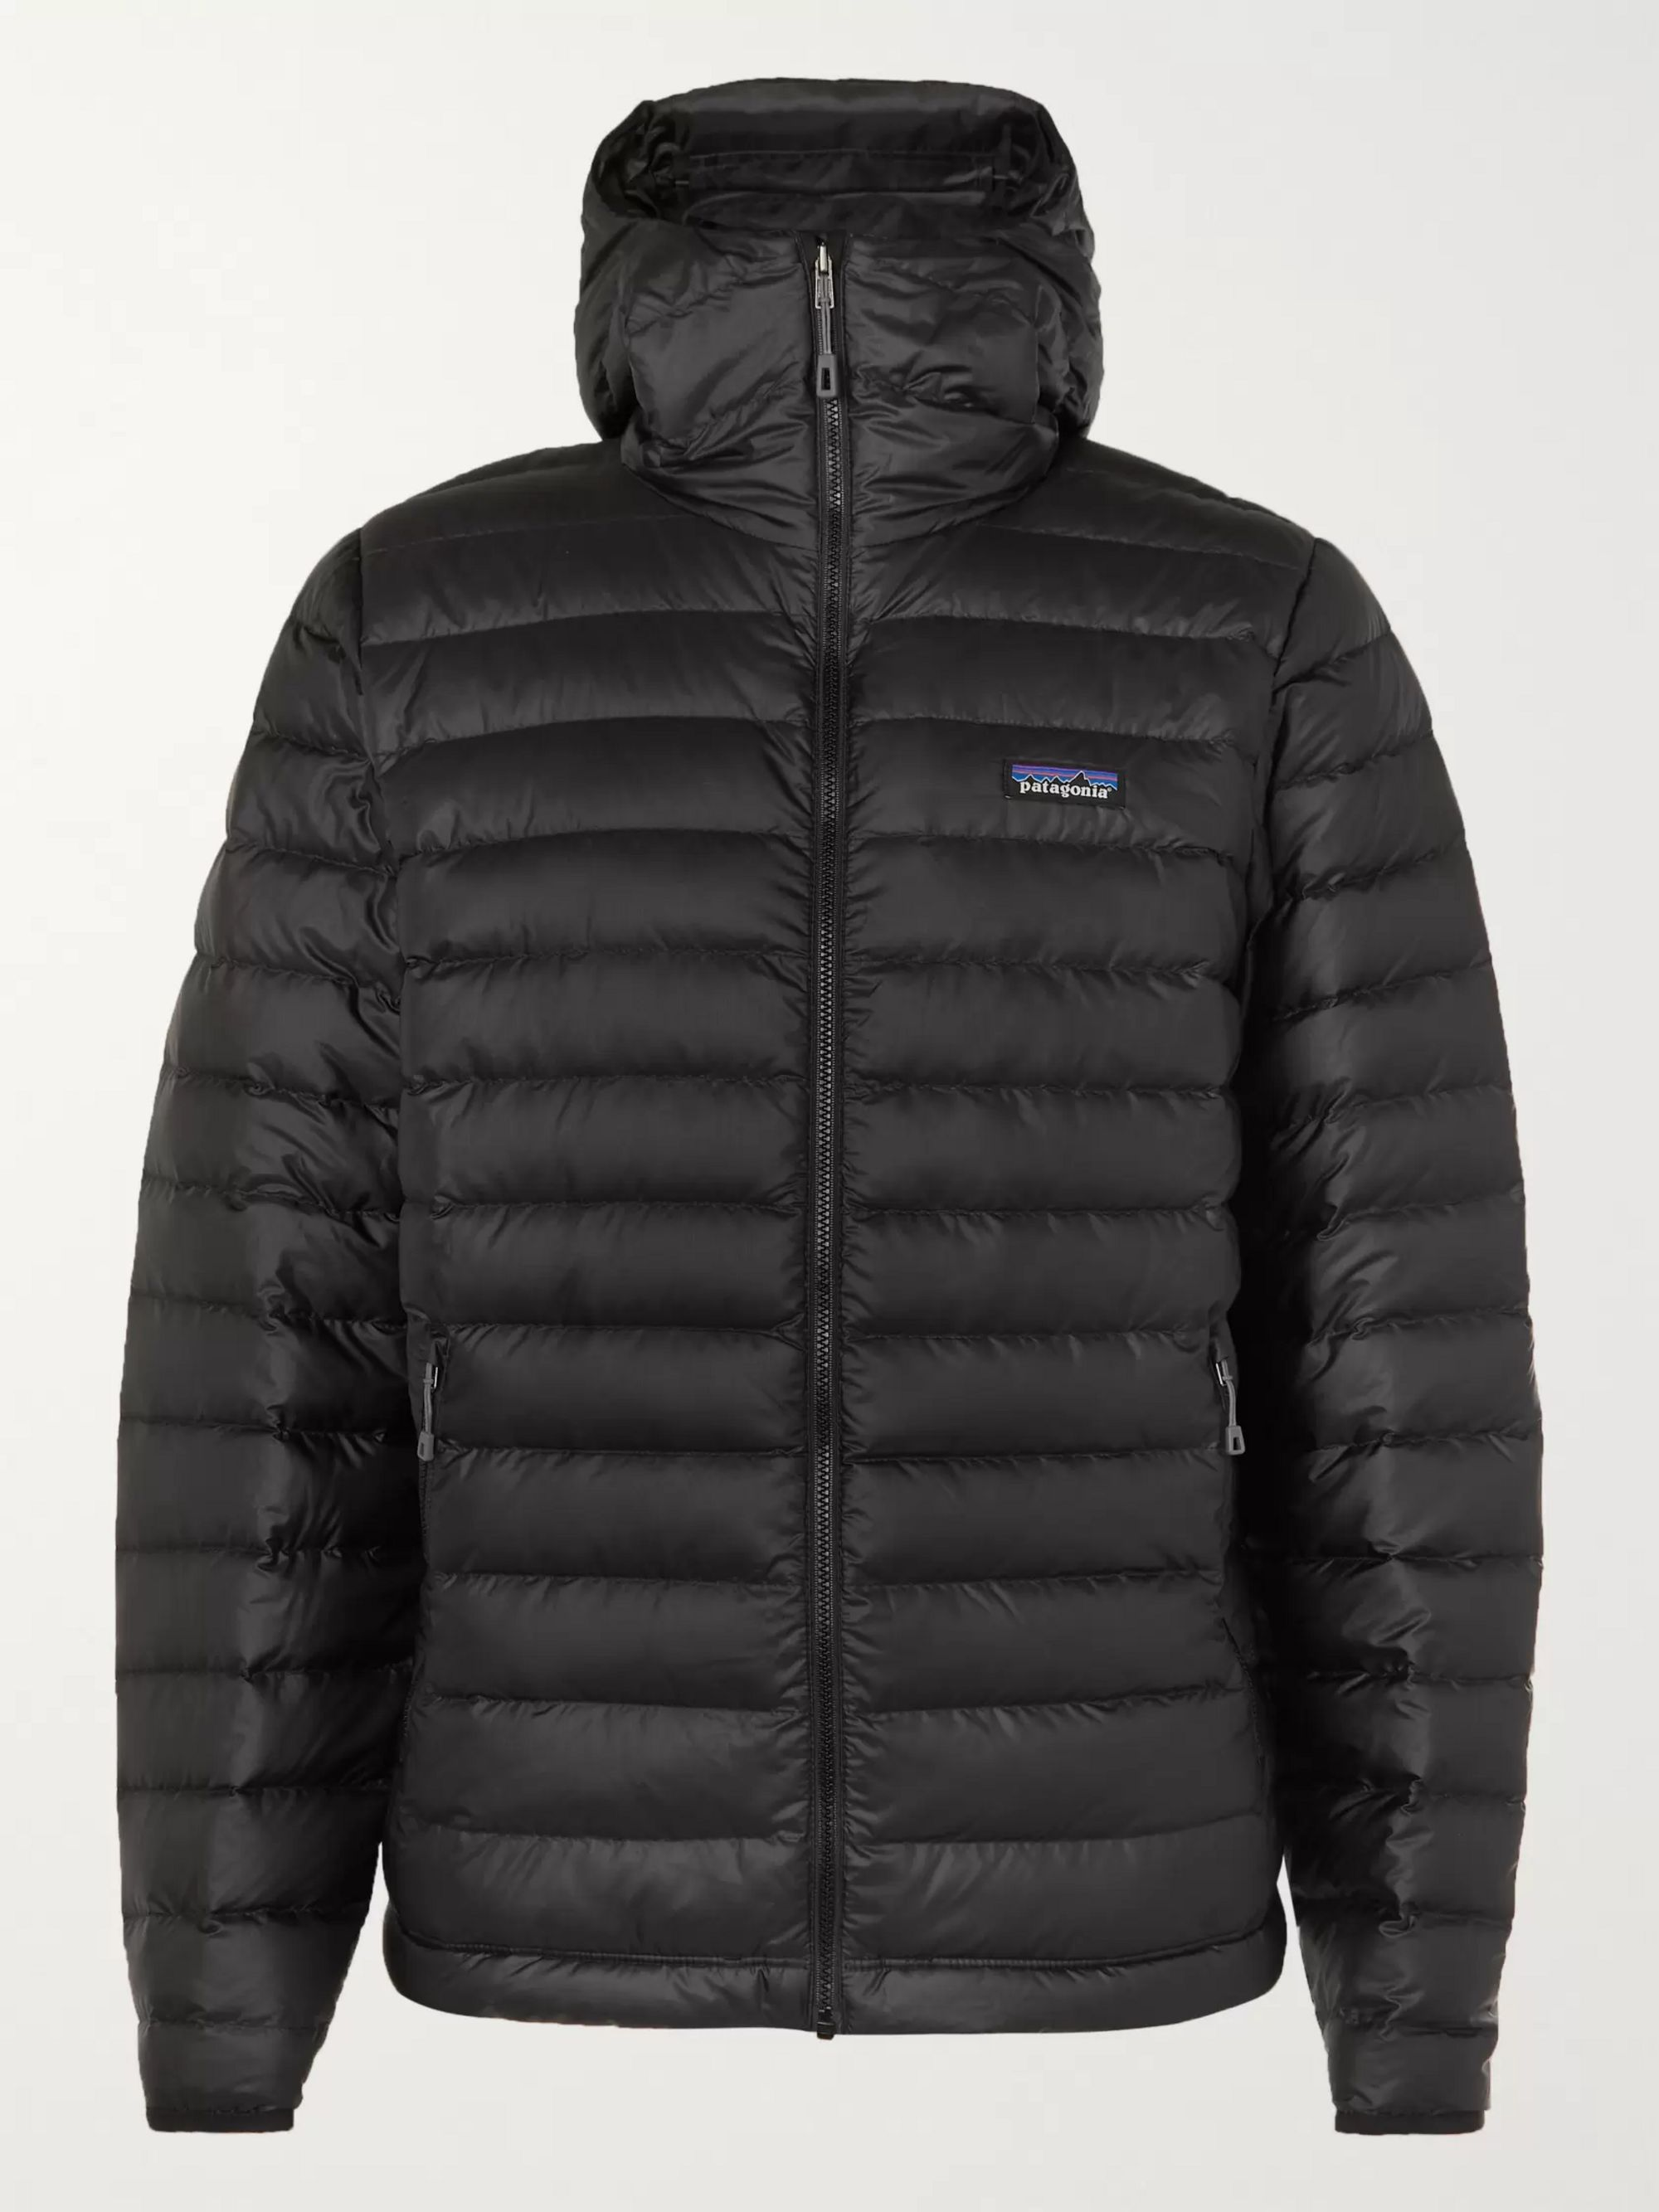 Patagonia Quilted Ripstop Hooded Down Jacket